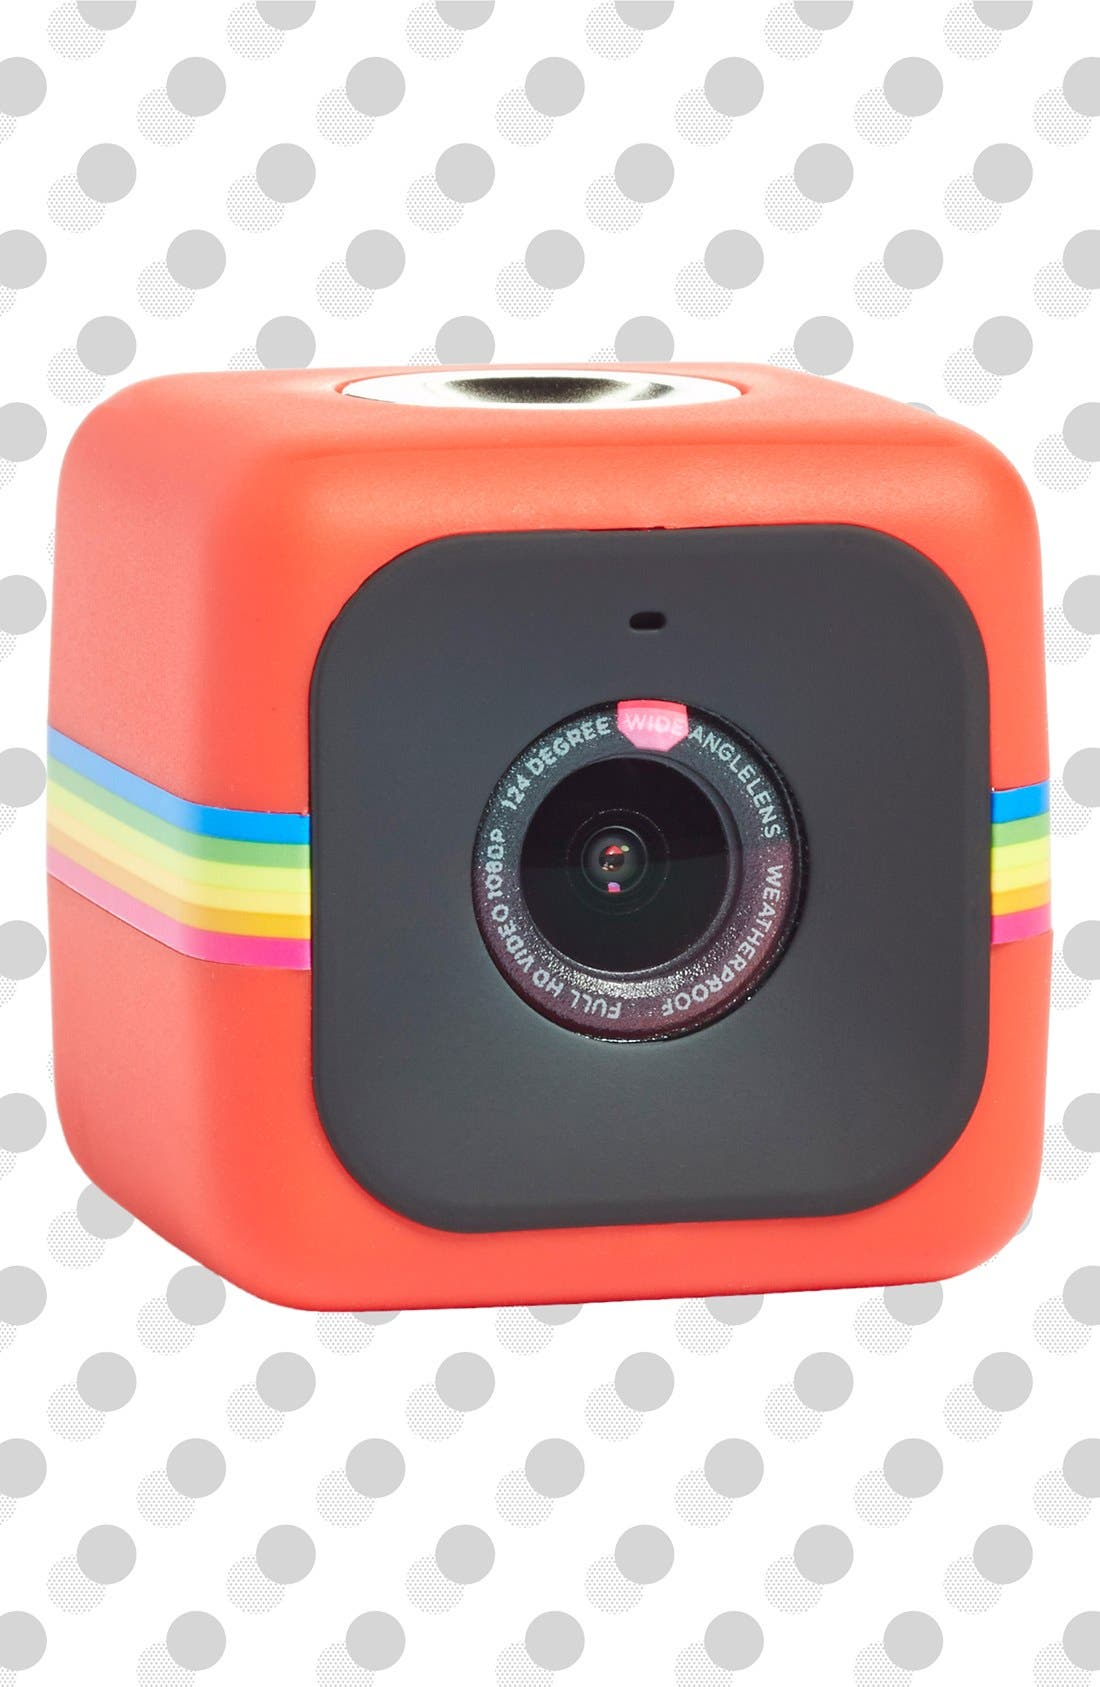 Alternate Image 1 Selected - Polaroid Cube™ HD Digital Video Action Camera Camcorder